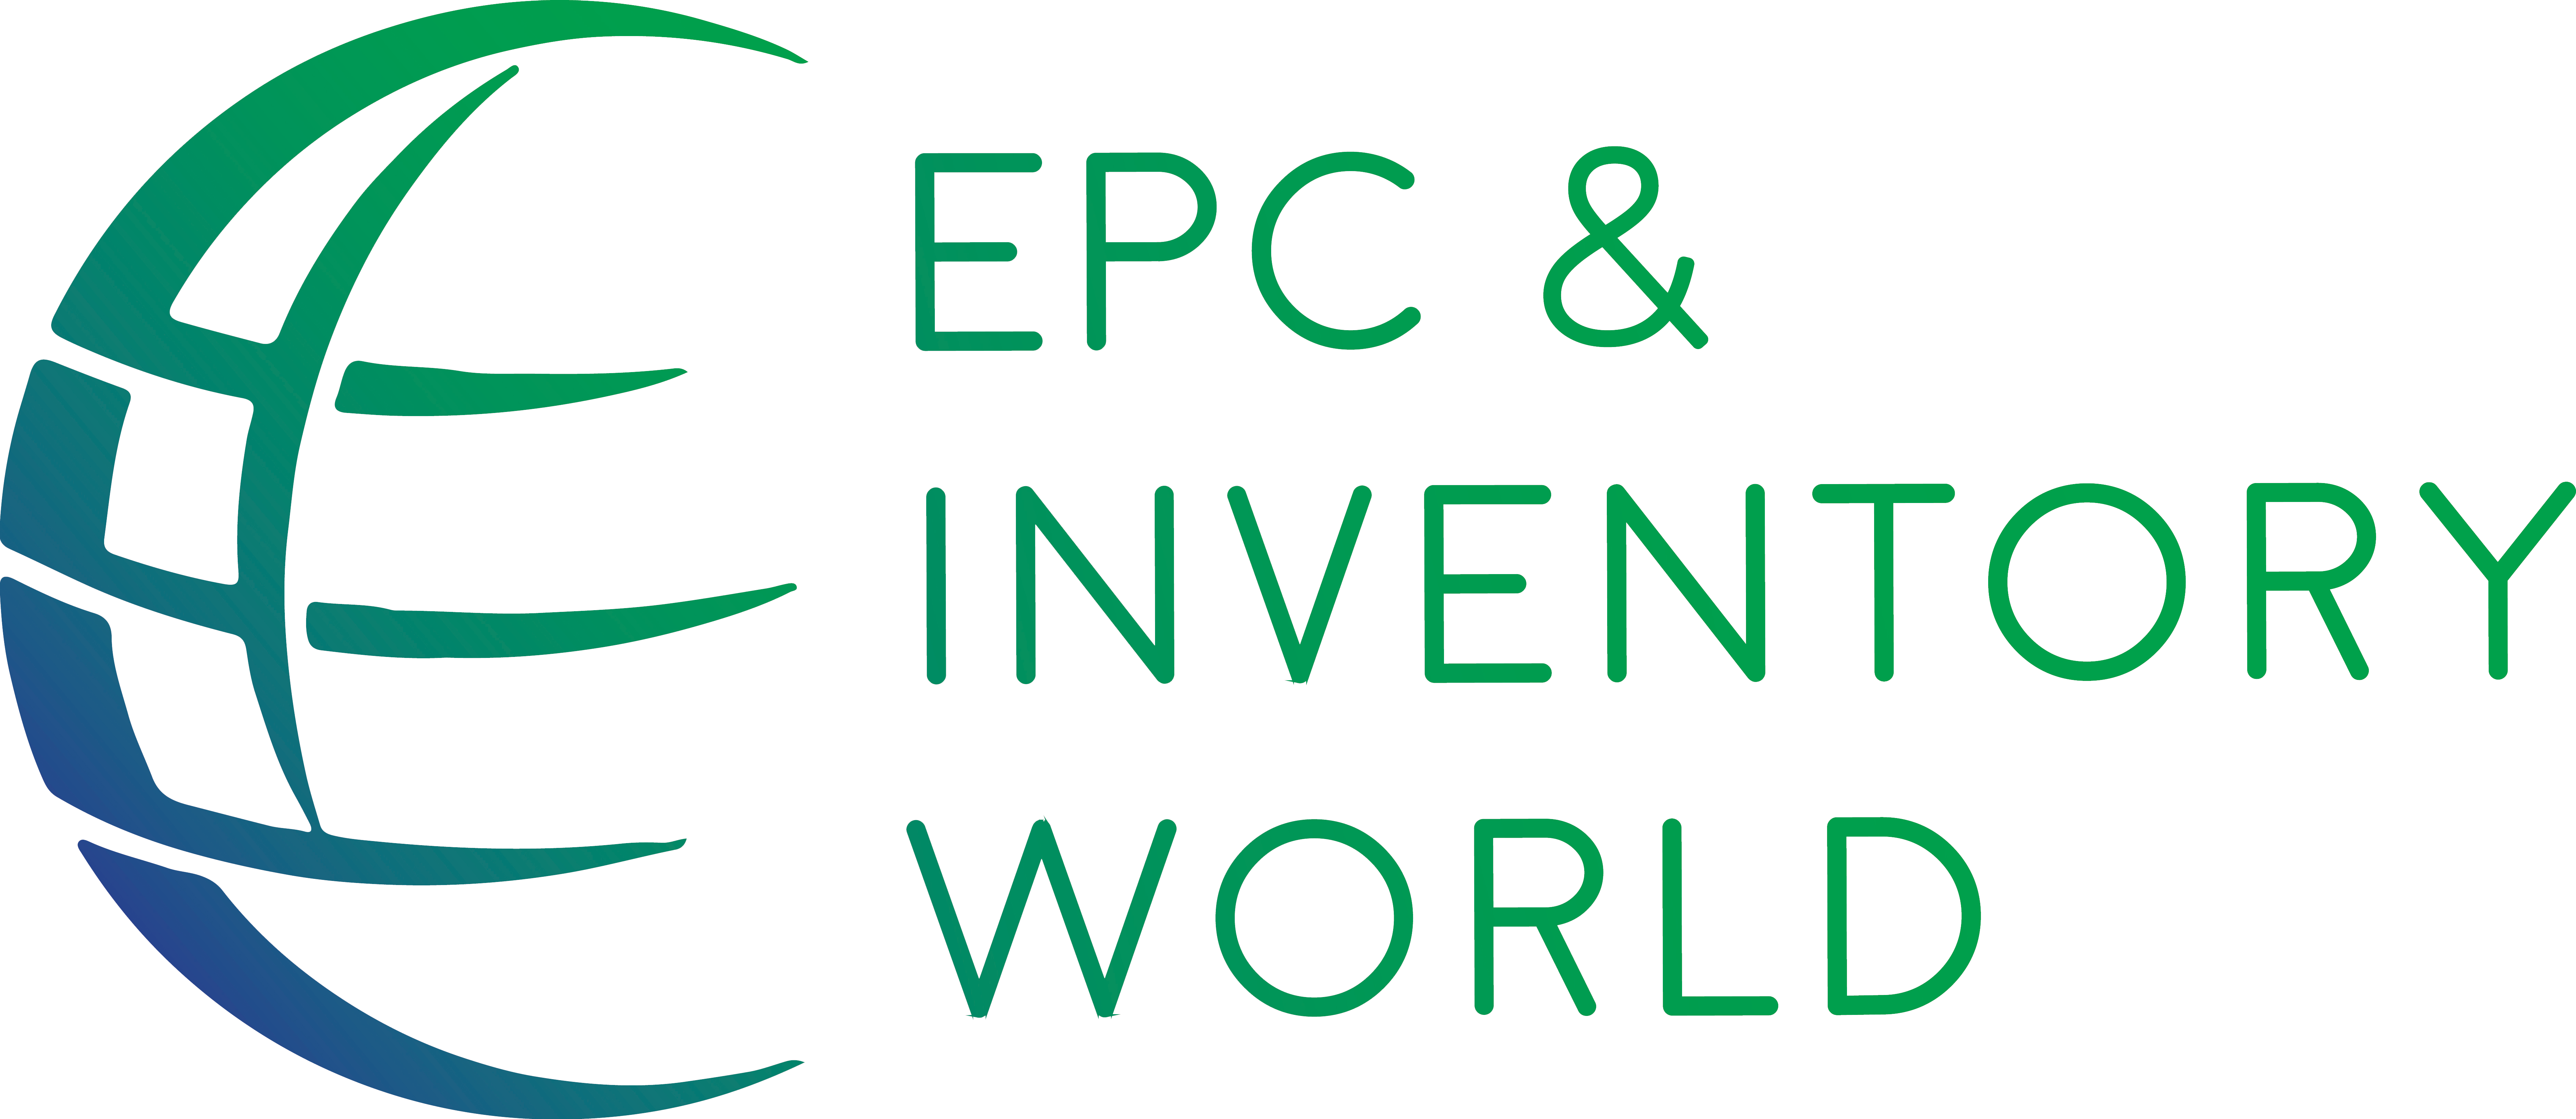 EPC and Inventory World